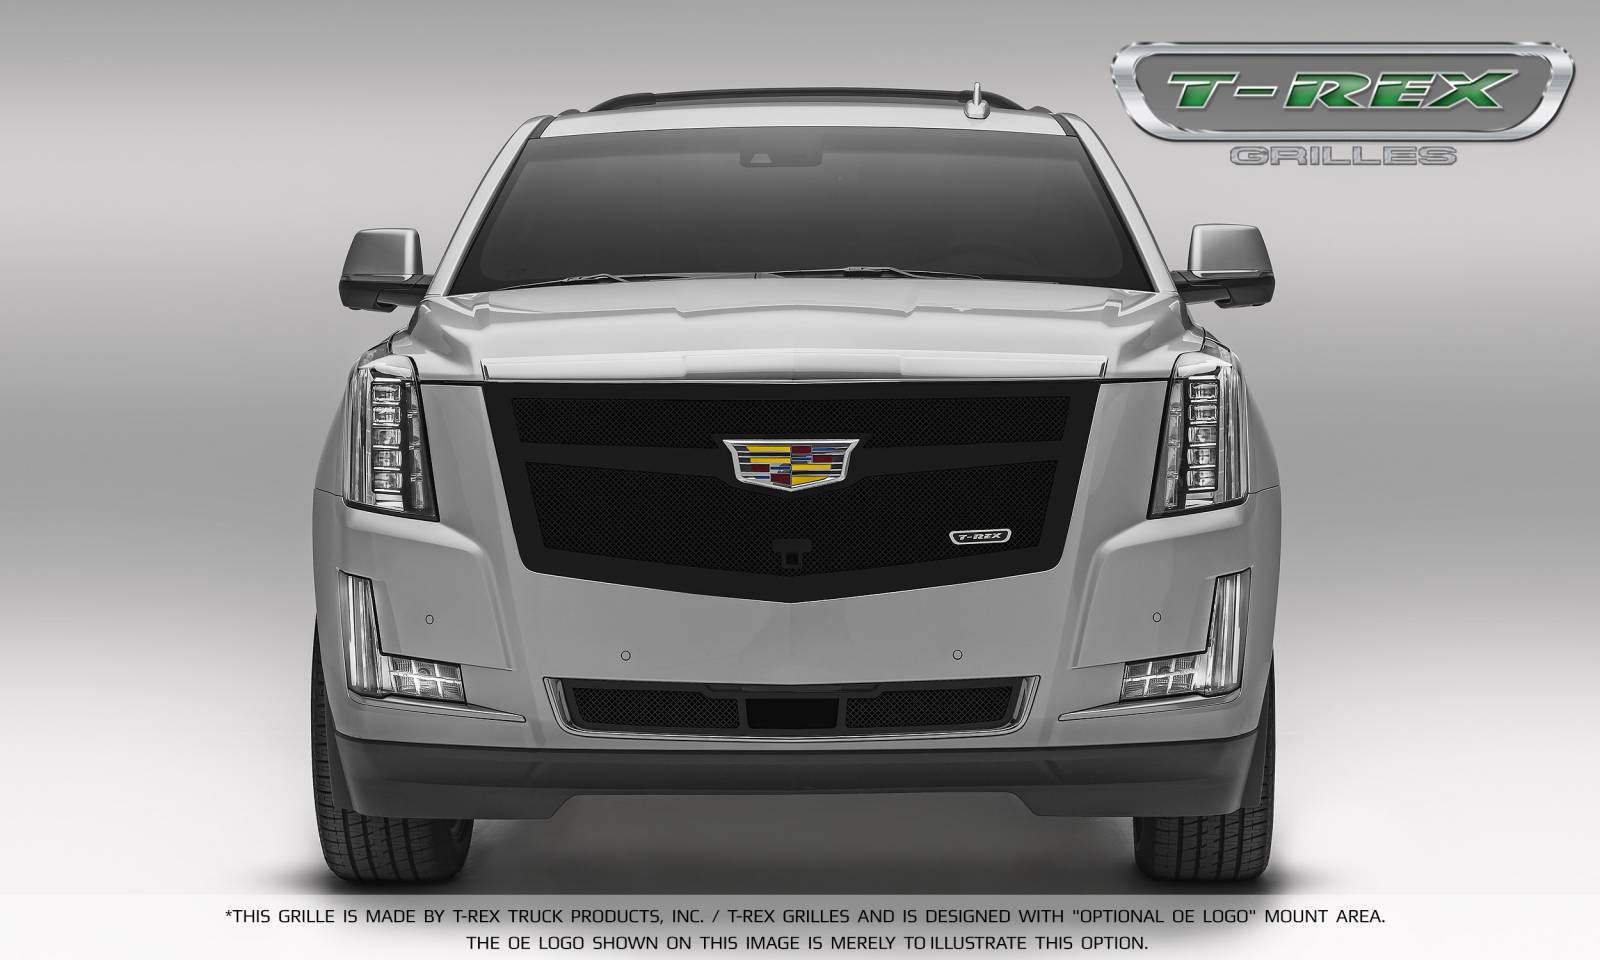 Luxurious New Grille Options For The Cadillac Escalade From T Rex